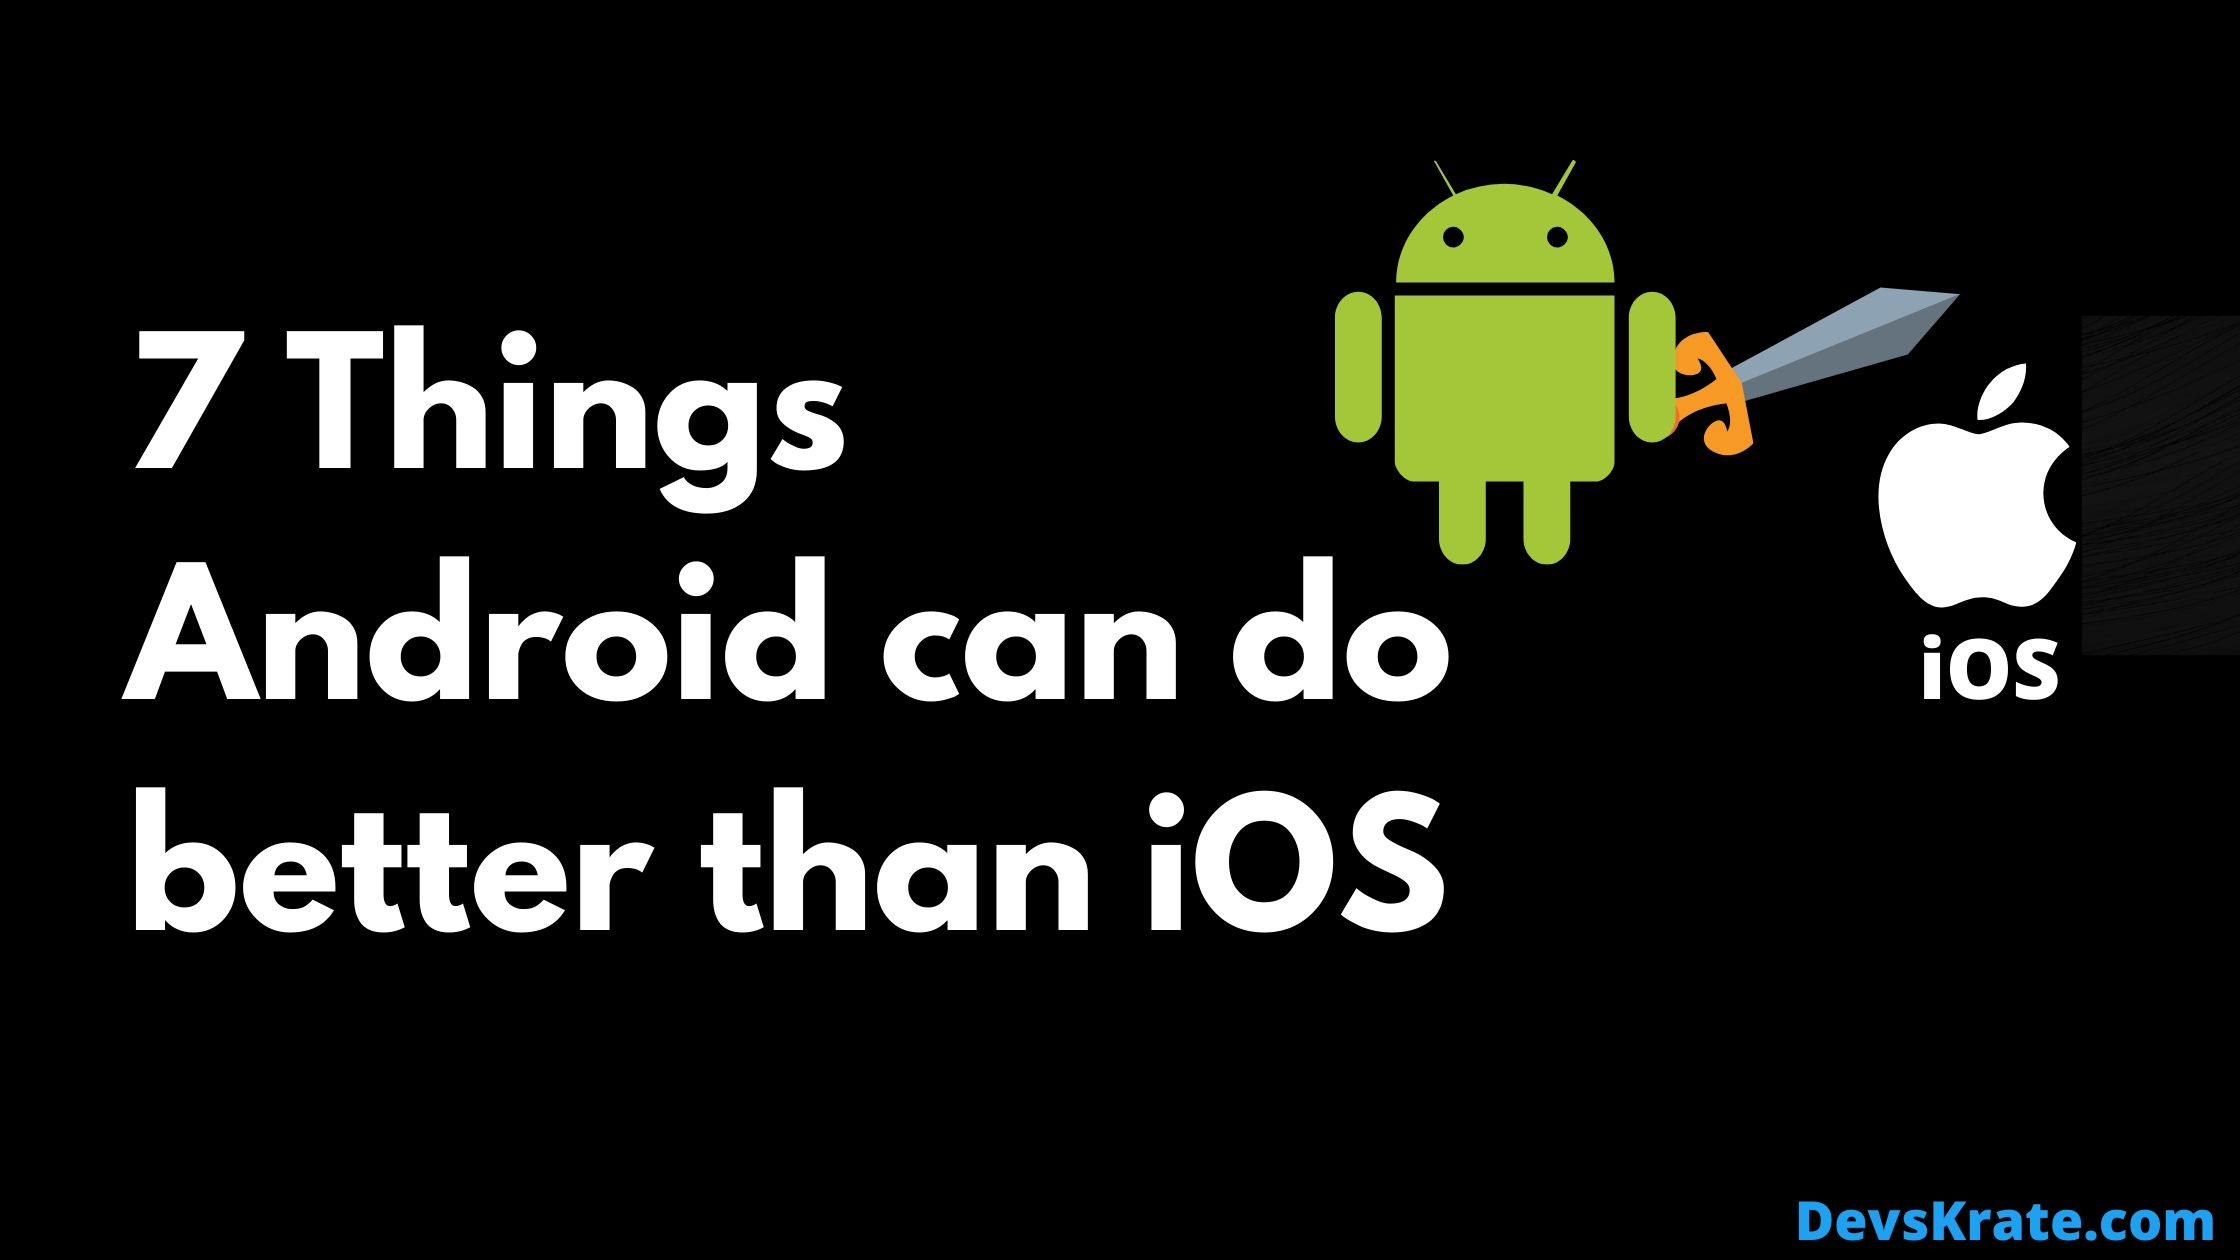 7 Things Android can do better than iOS